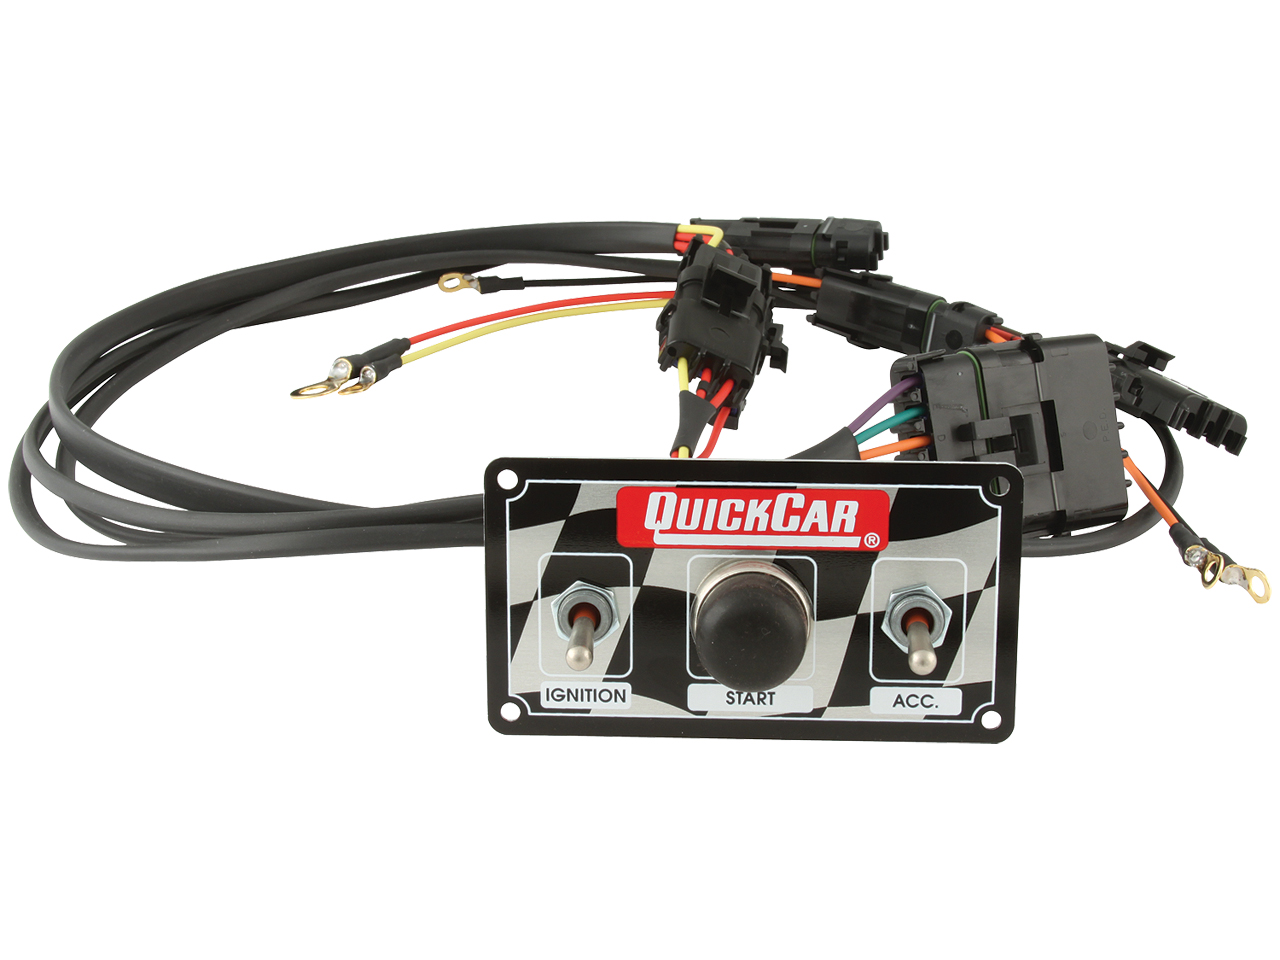 Quickcar Wiring Kit - MSD Harness w/ Switch Panel (QRP50020)